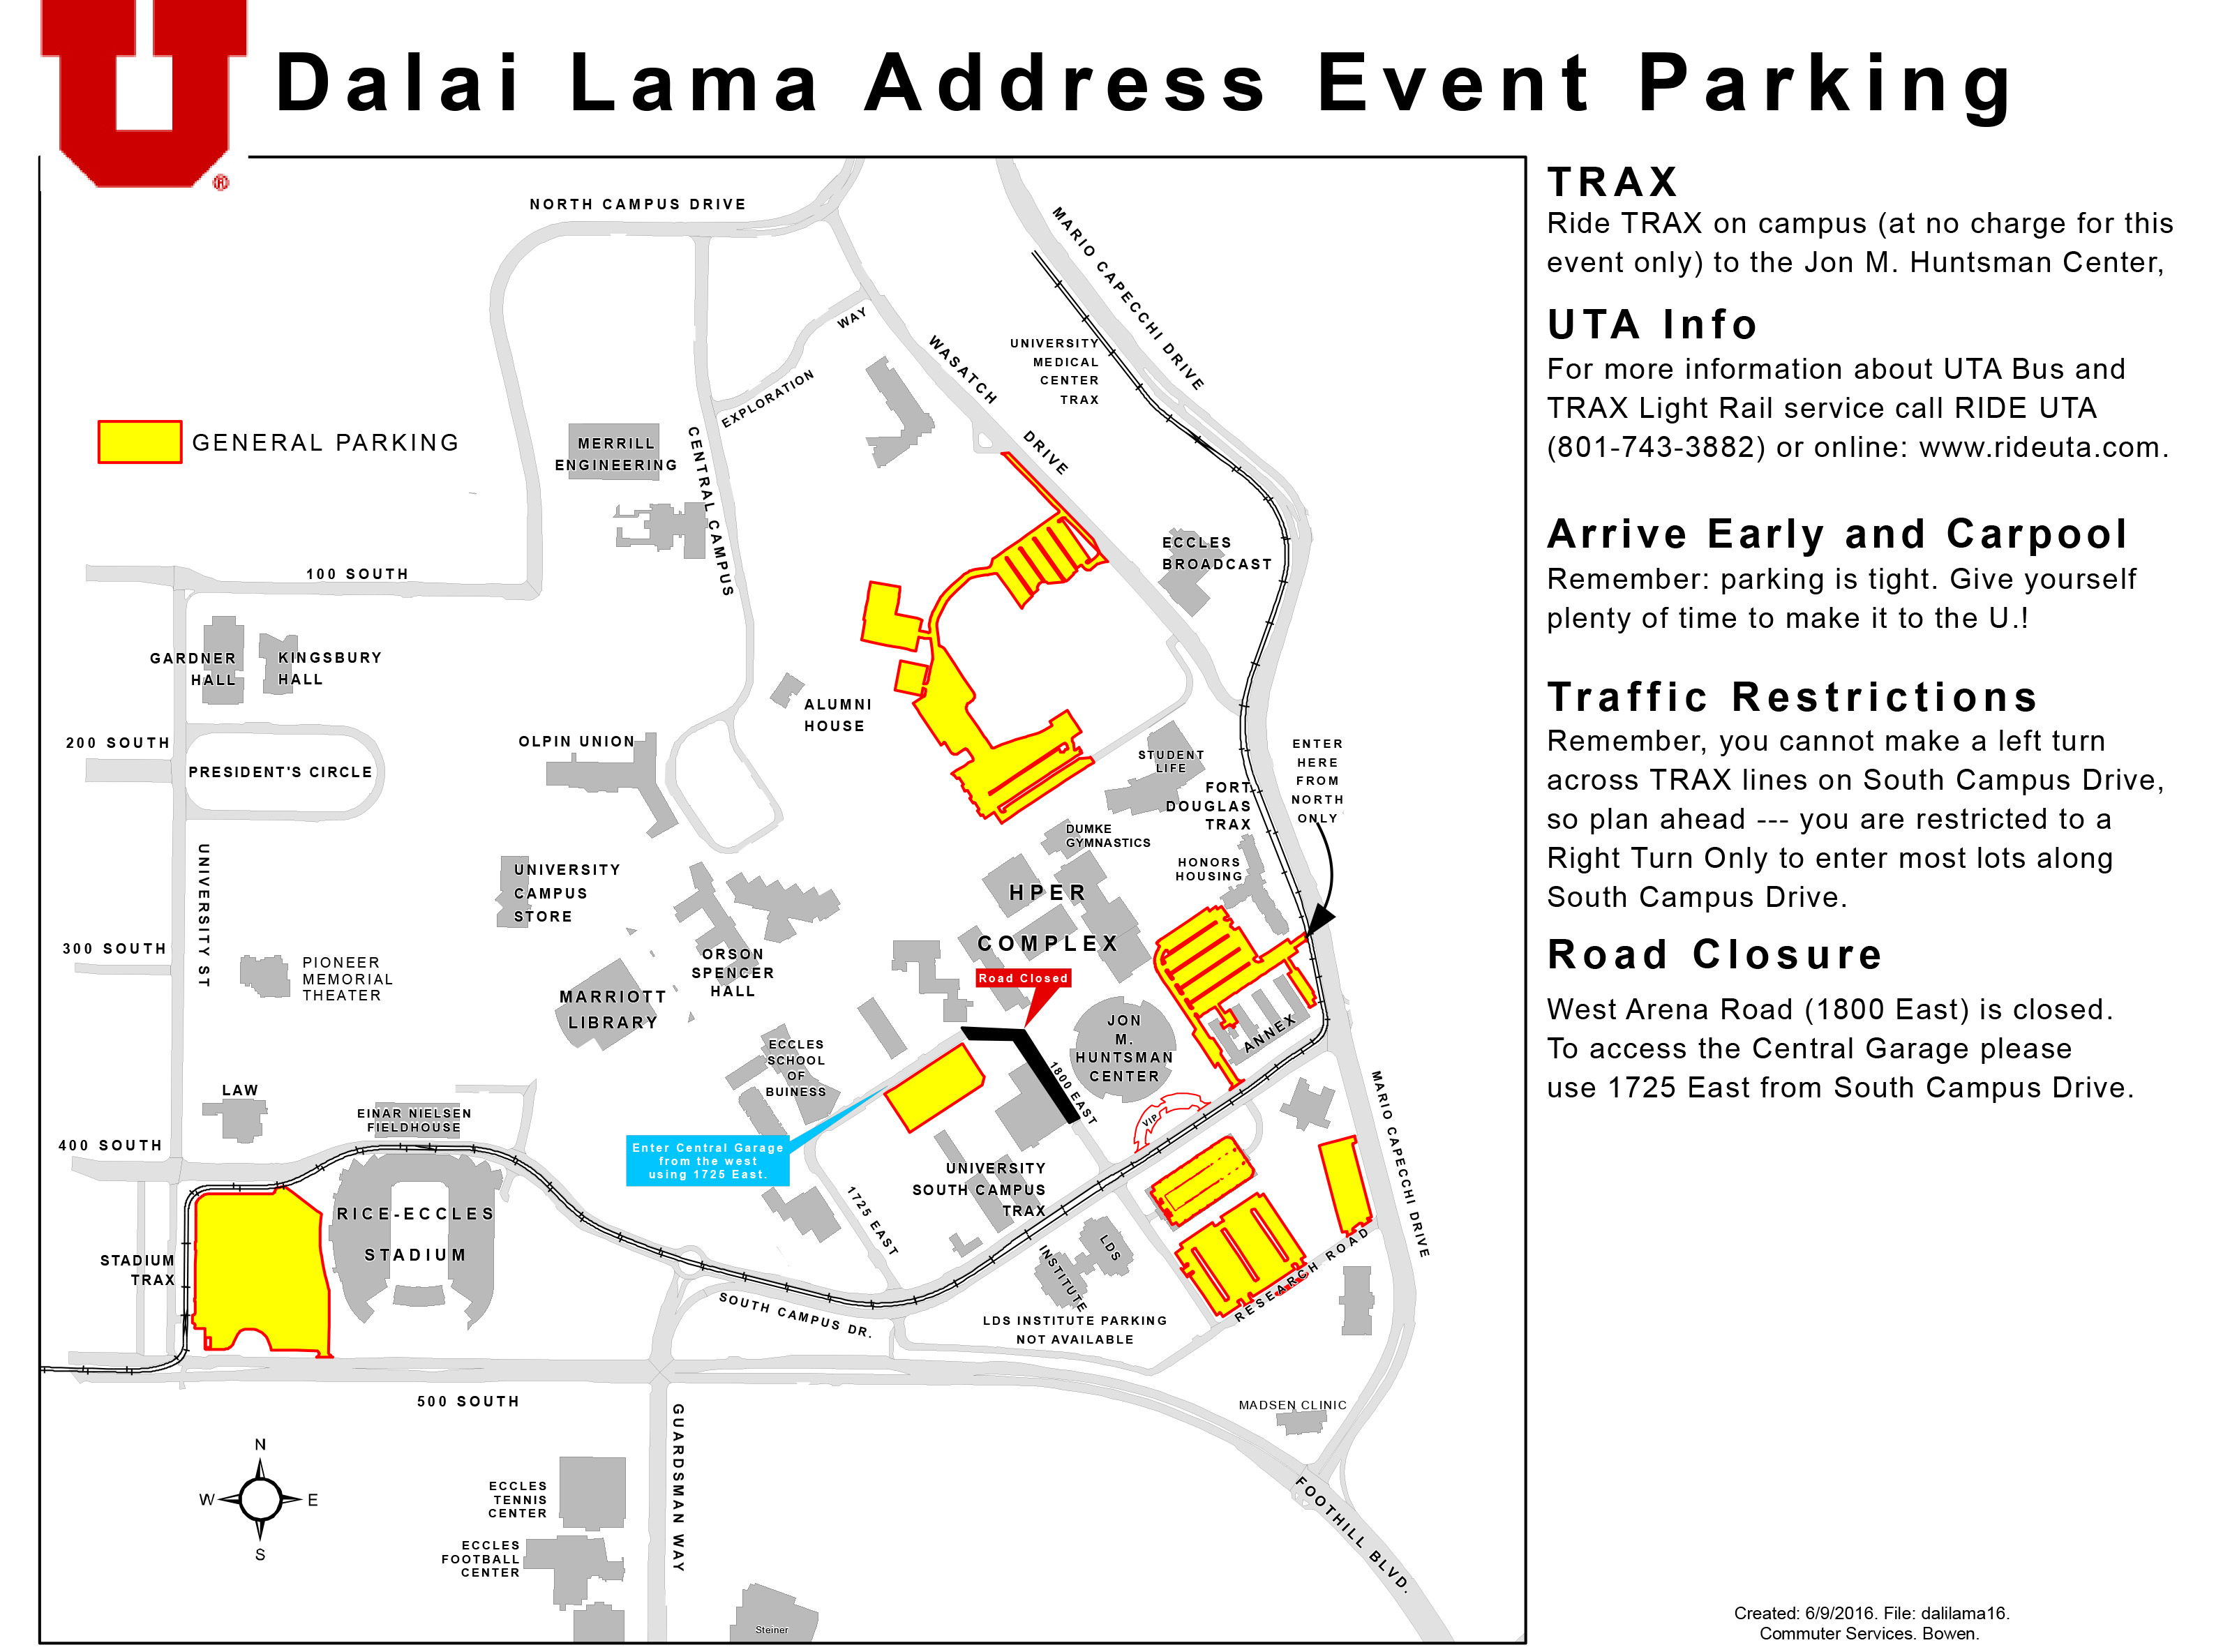 2016-Dalai-Lama-Parking-Map